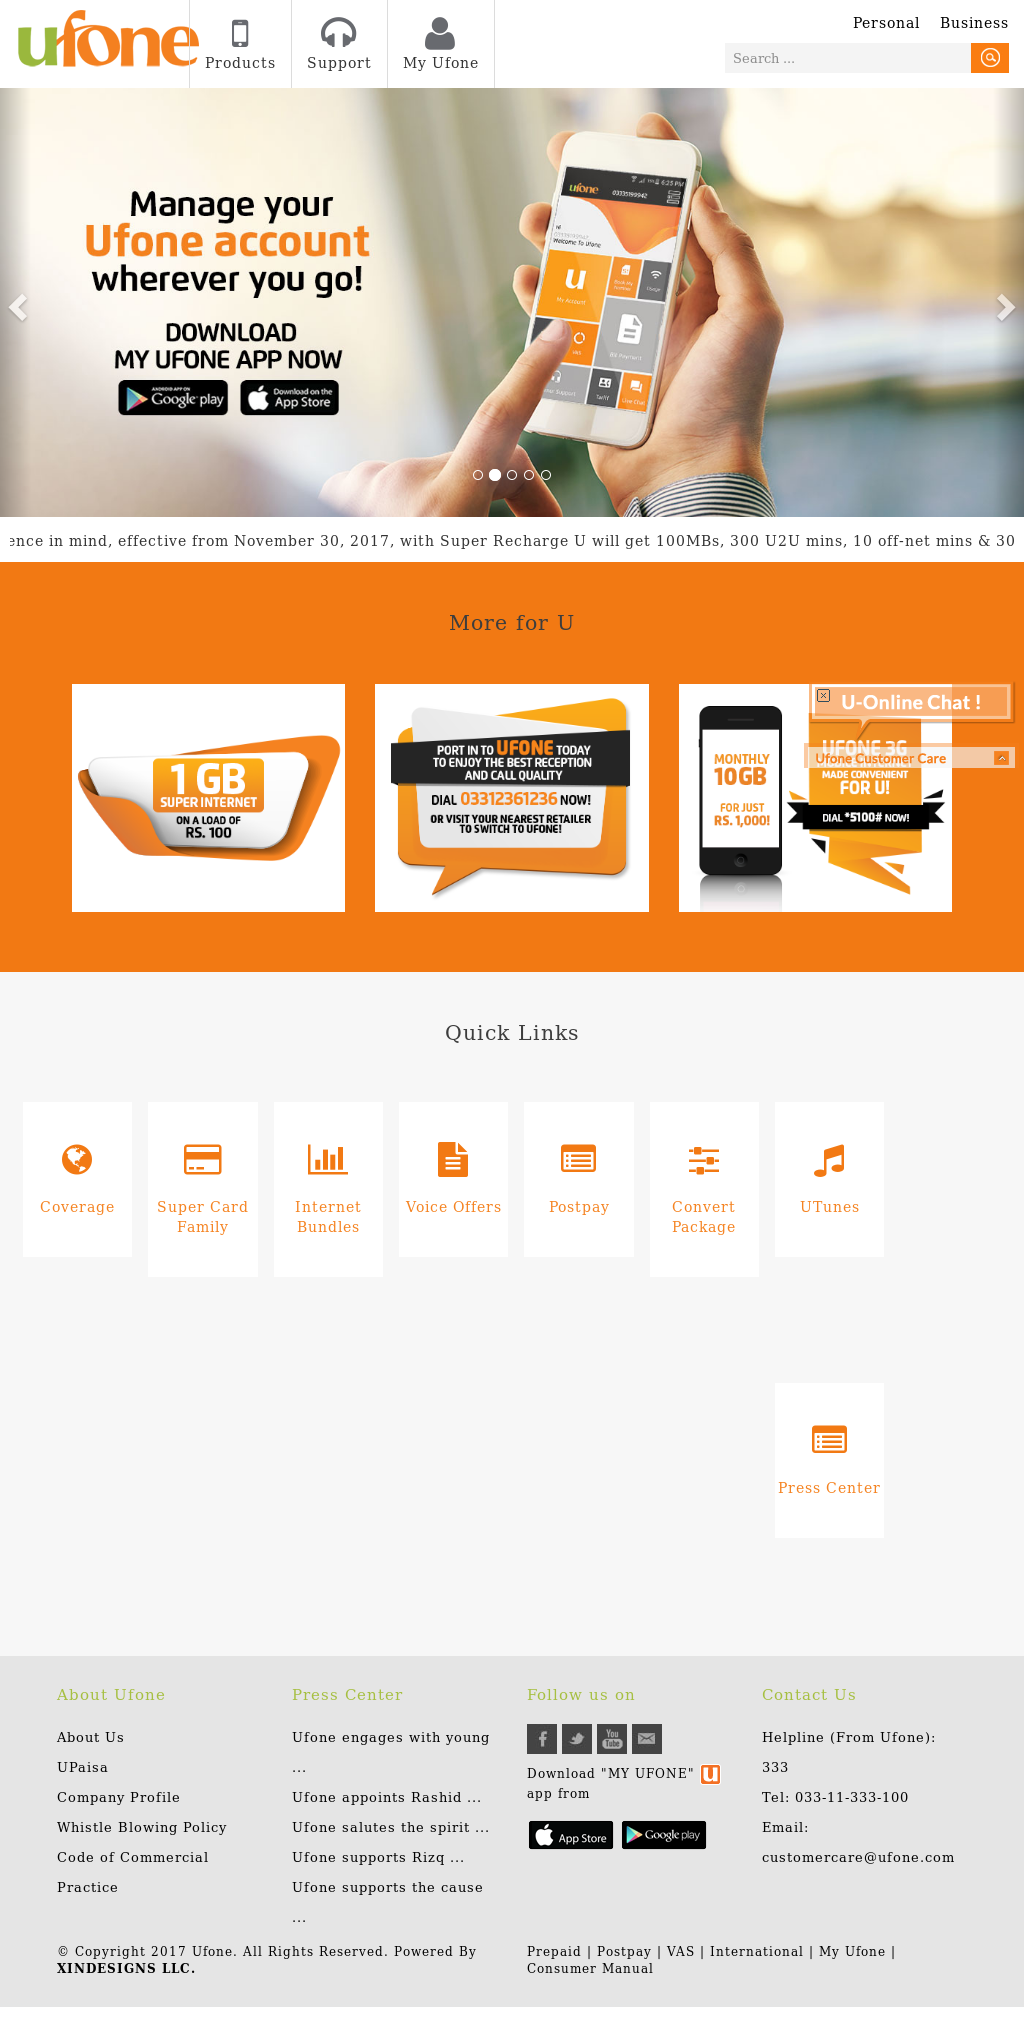 Owler Reports - Ufone: Ufone Launches Prepaid Data Roaming Offer for